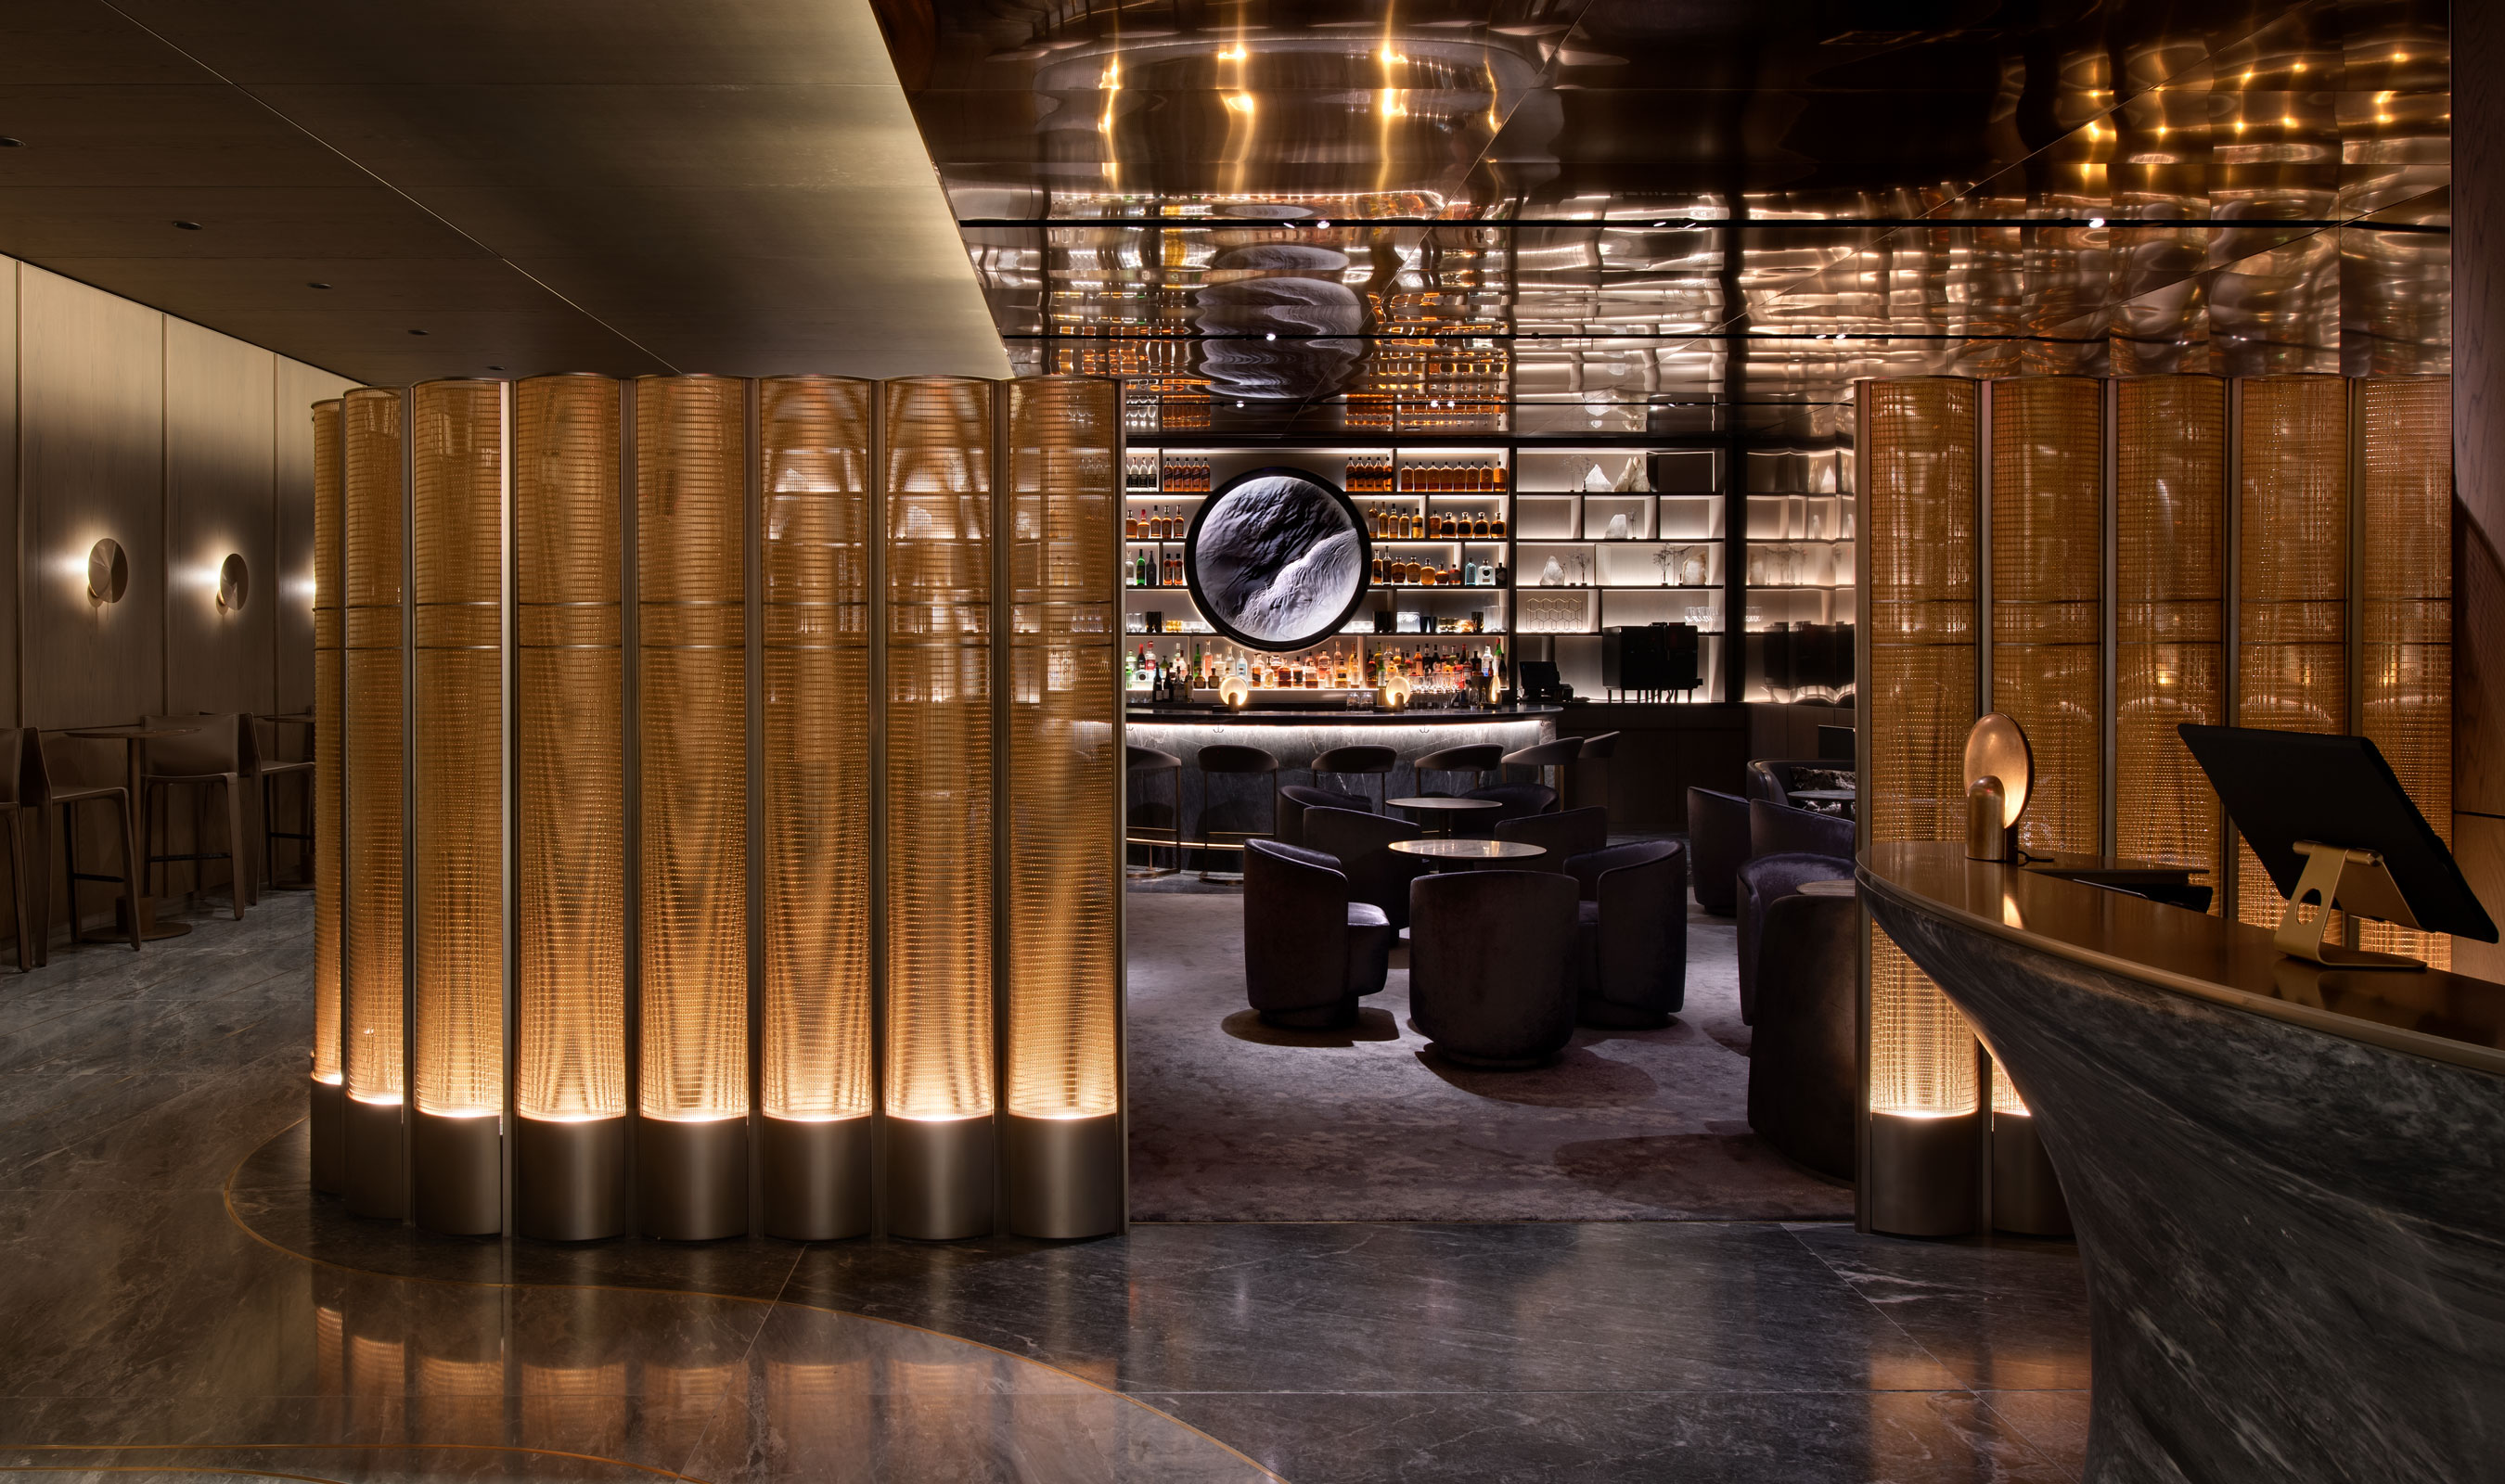 Peak Restaurant inside 30 Hudson Yards, in New York City, uses Banker Wire's PZ-52 woven wire mesh in Bronze and a stunning and unique interior space divider.